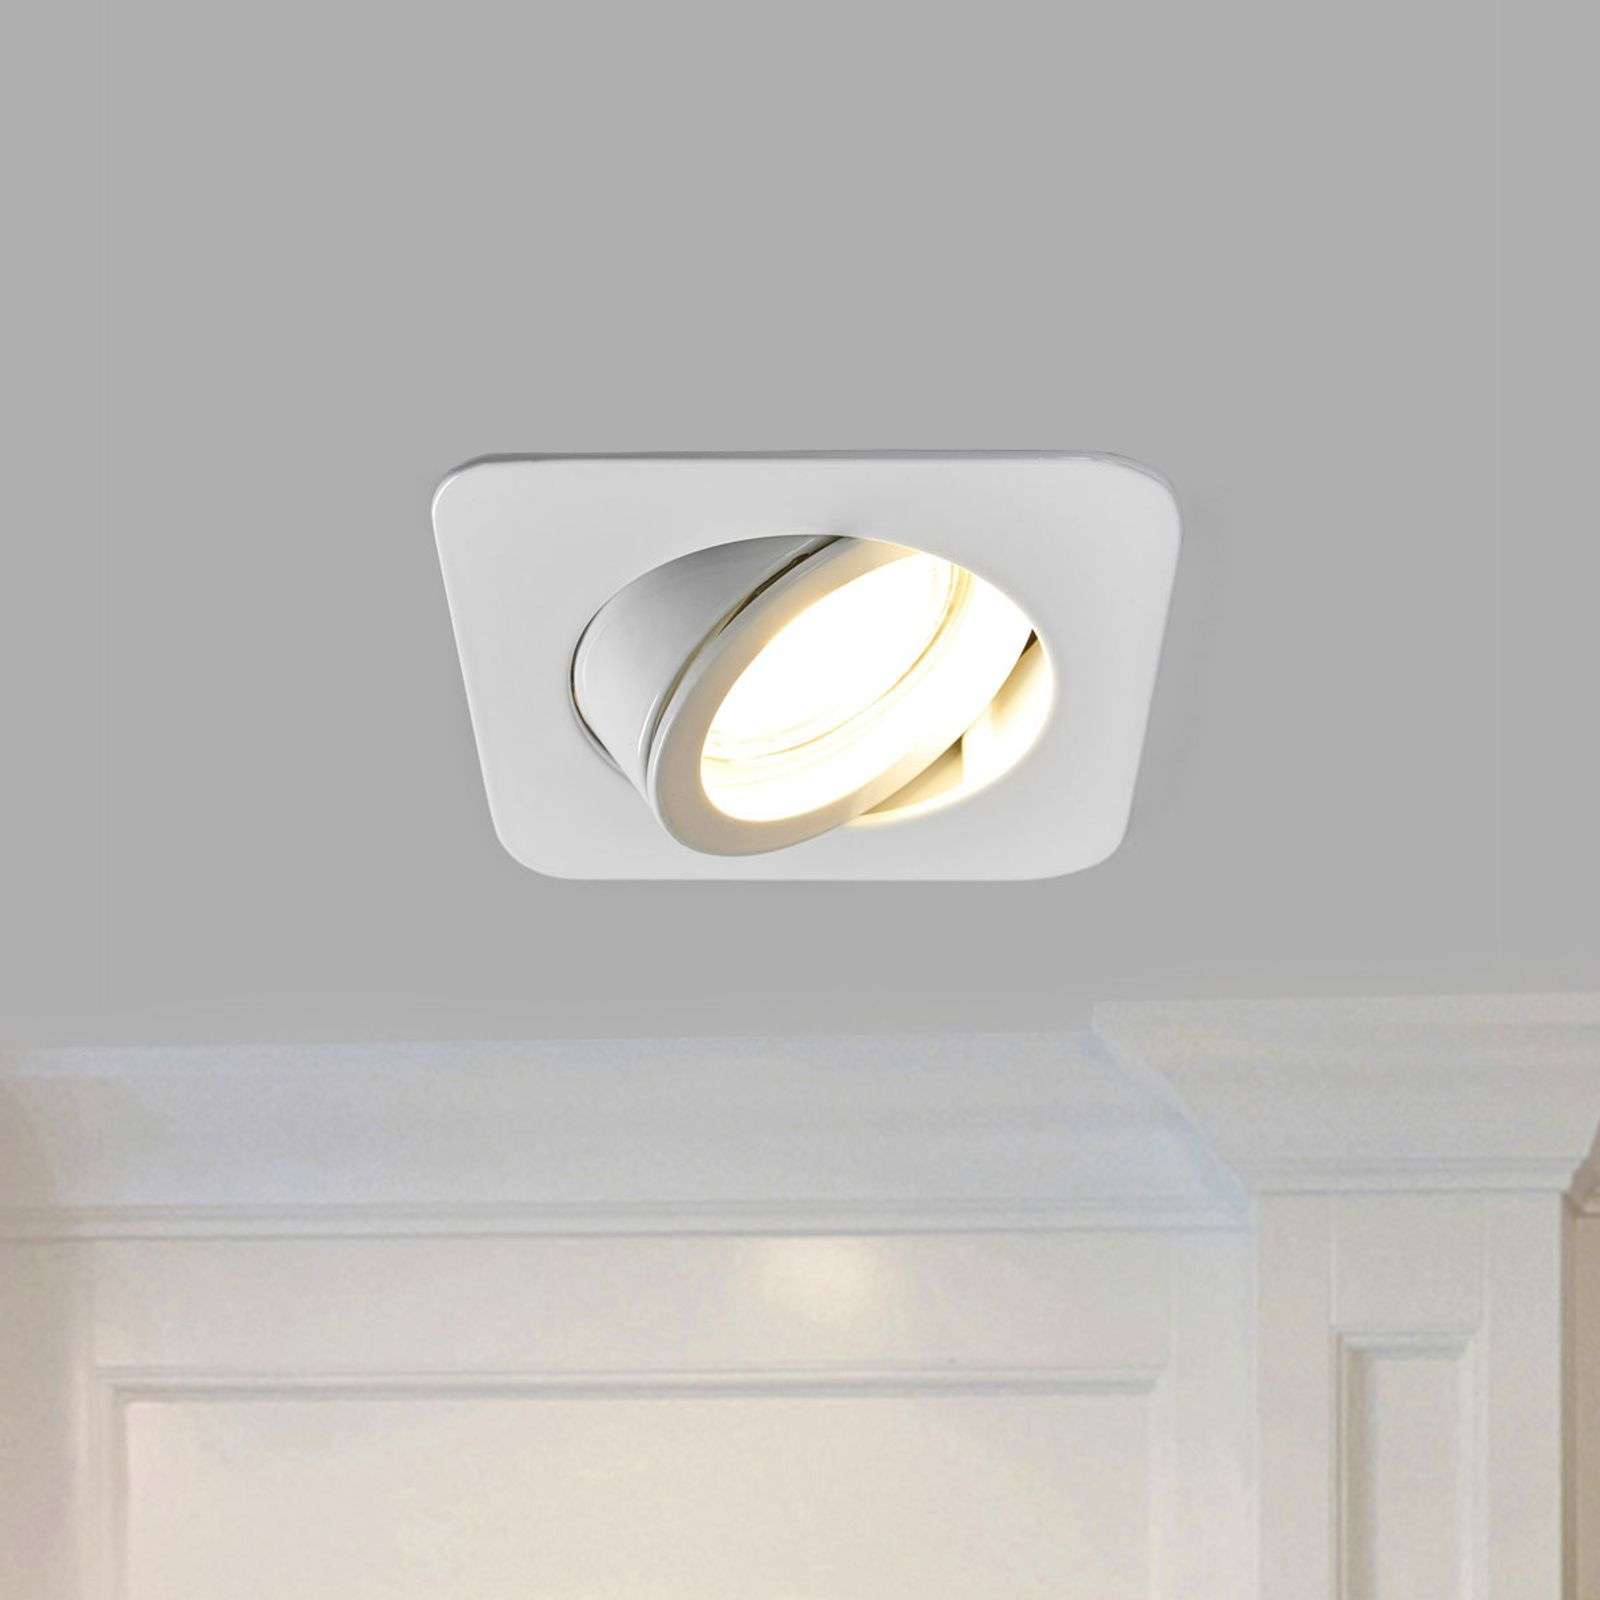 Spot LED encastrable Charna blanc, GU10